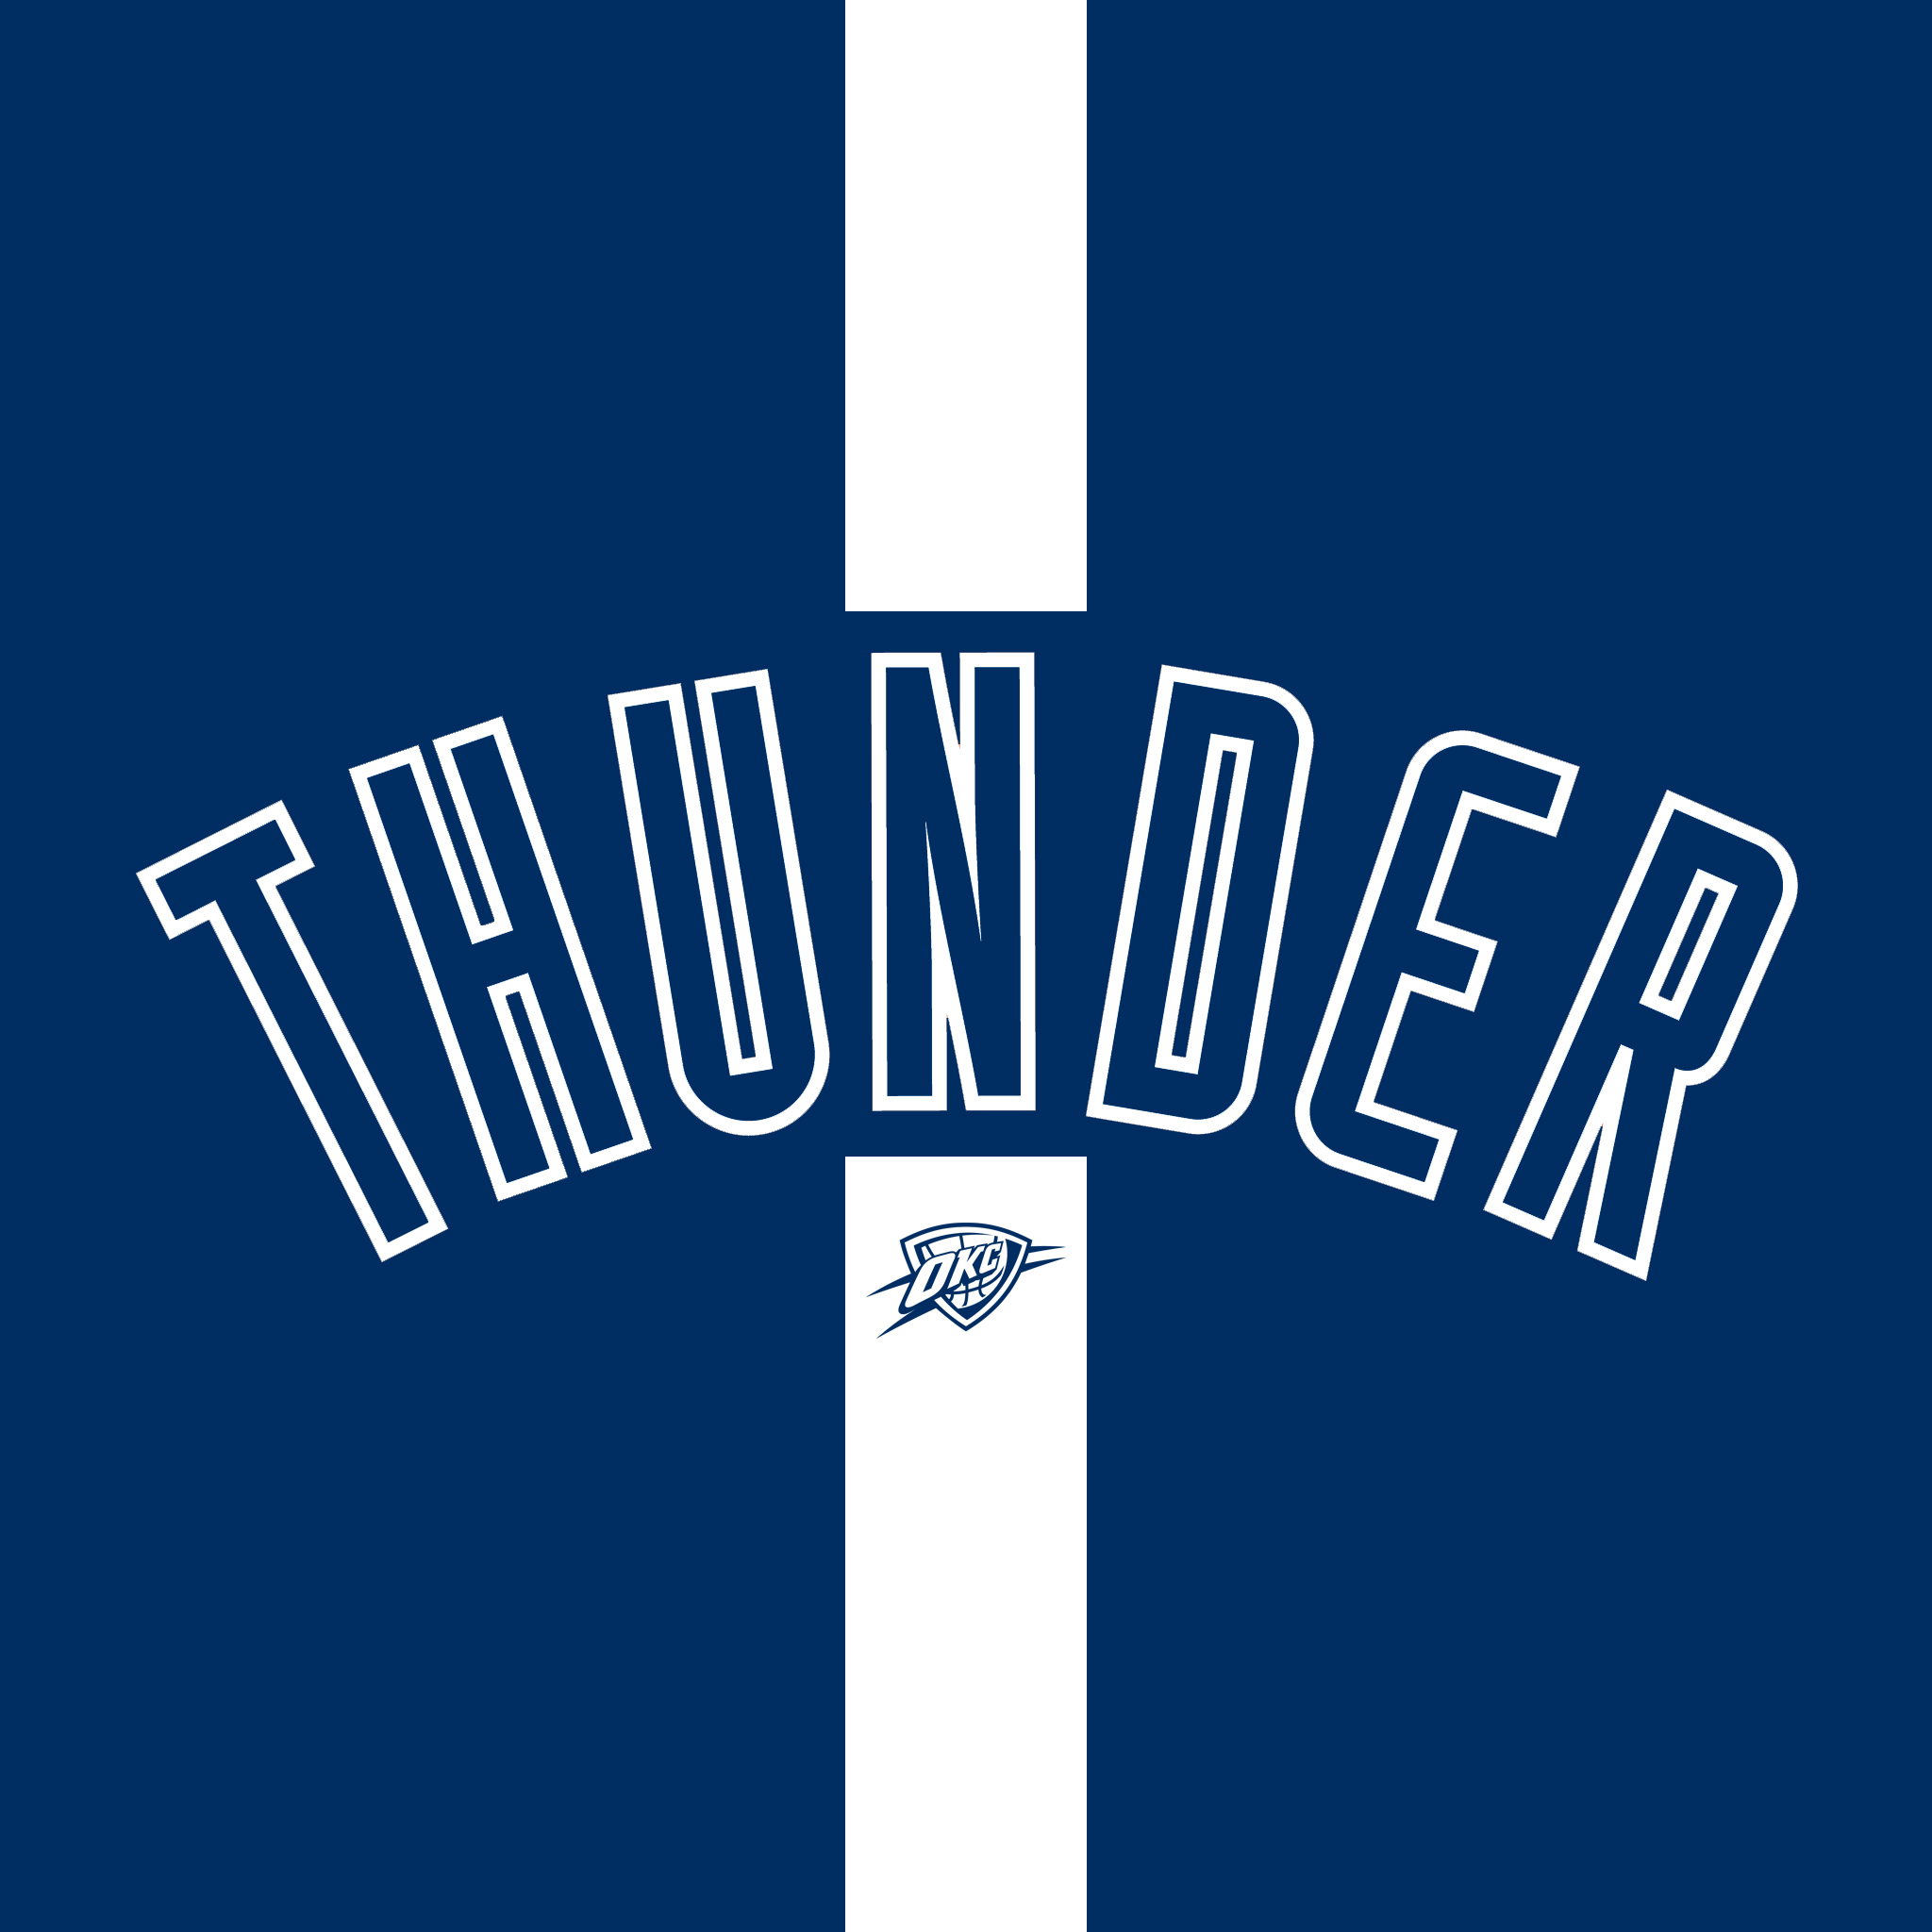 Download Hd Wallpapers Of Oklahoma City Thunder Basketball Team Logo